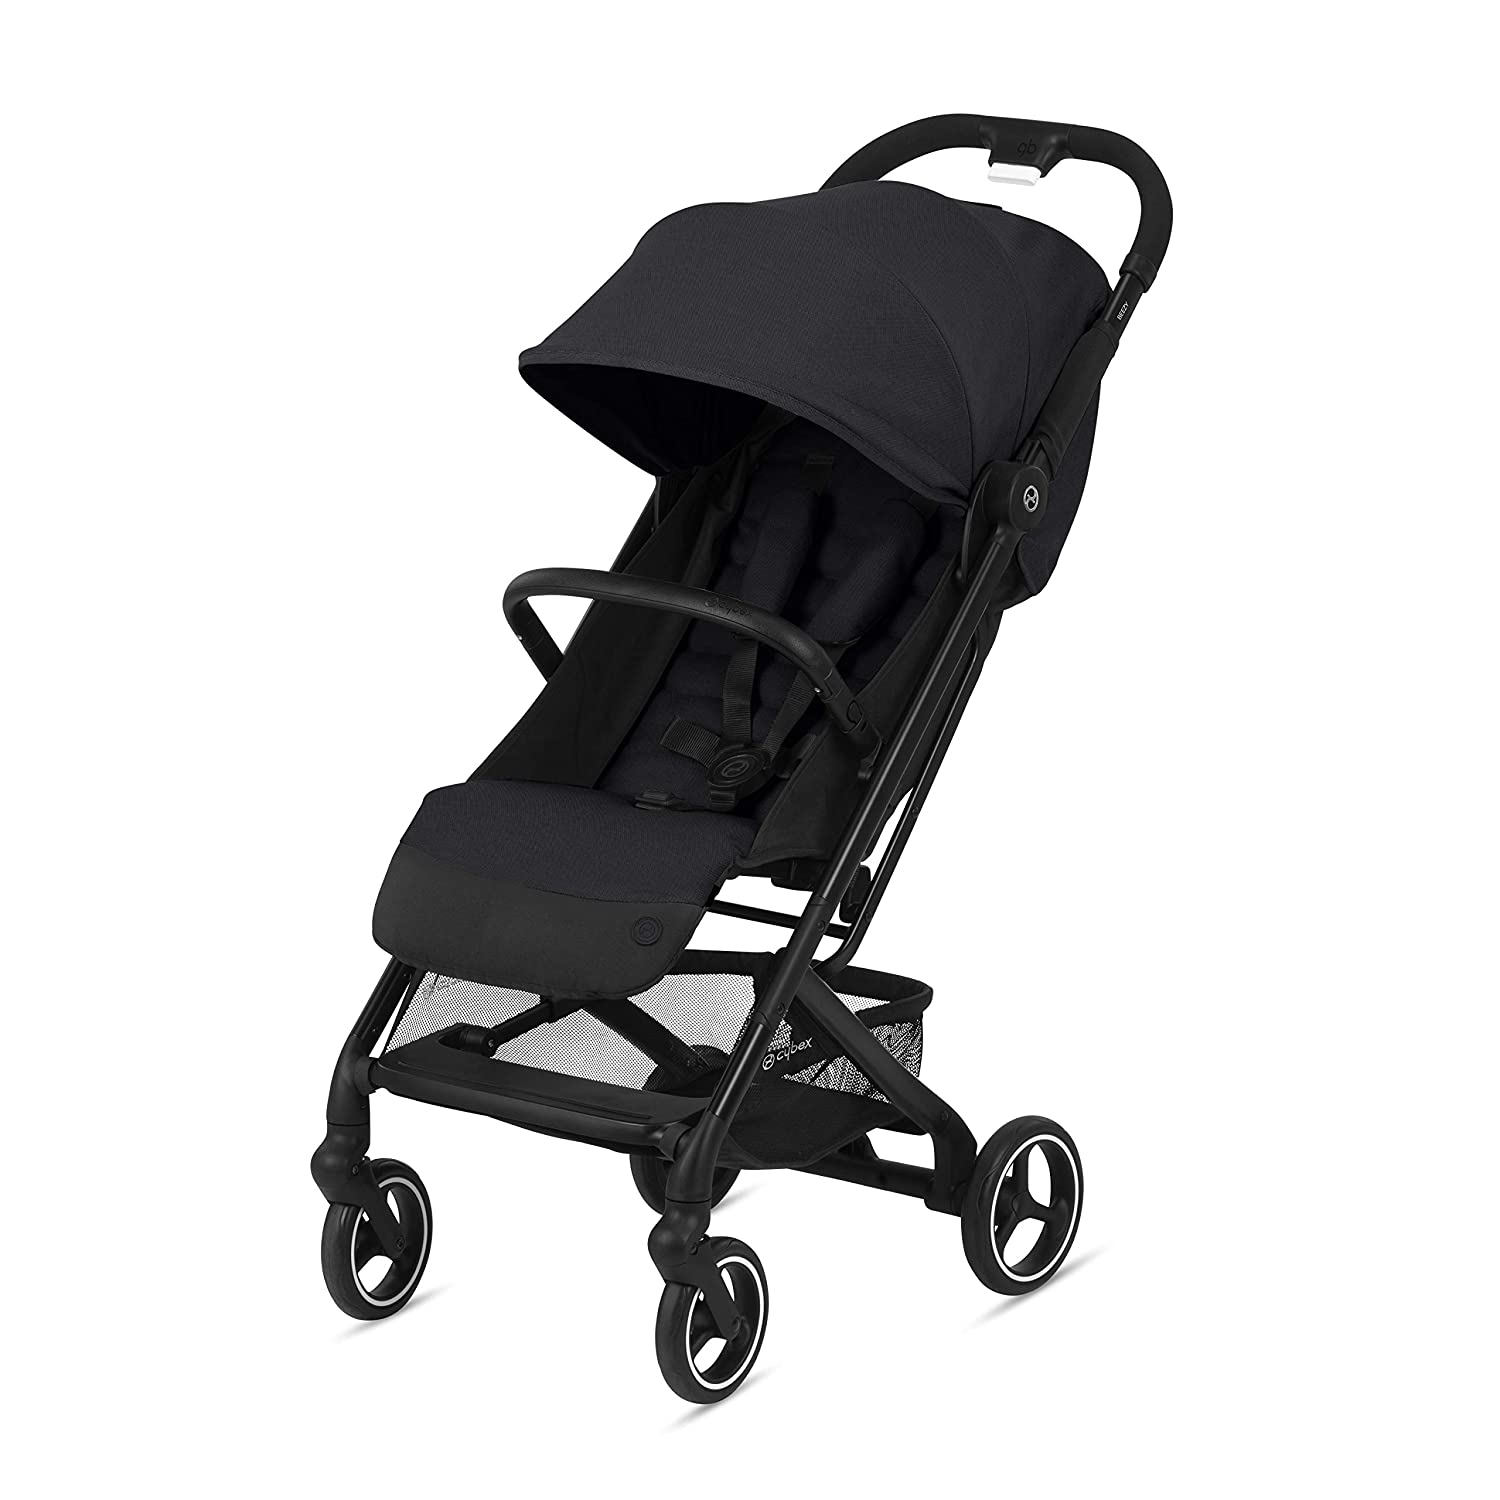 CYBEX Beezy Stroller, Lightweight Baby Stroller, Compact Fold, Compatible with All CYBEX Infant Seats, Stands for Storage, Easy to Carry, Multiple Recline Positions, Travel Stroller, Deep Black